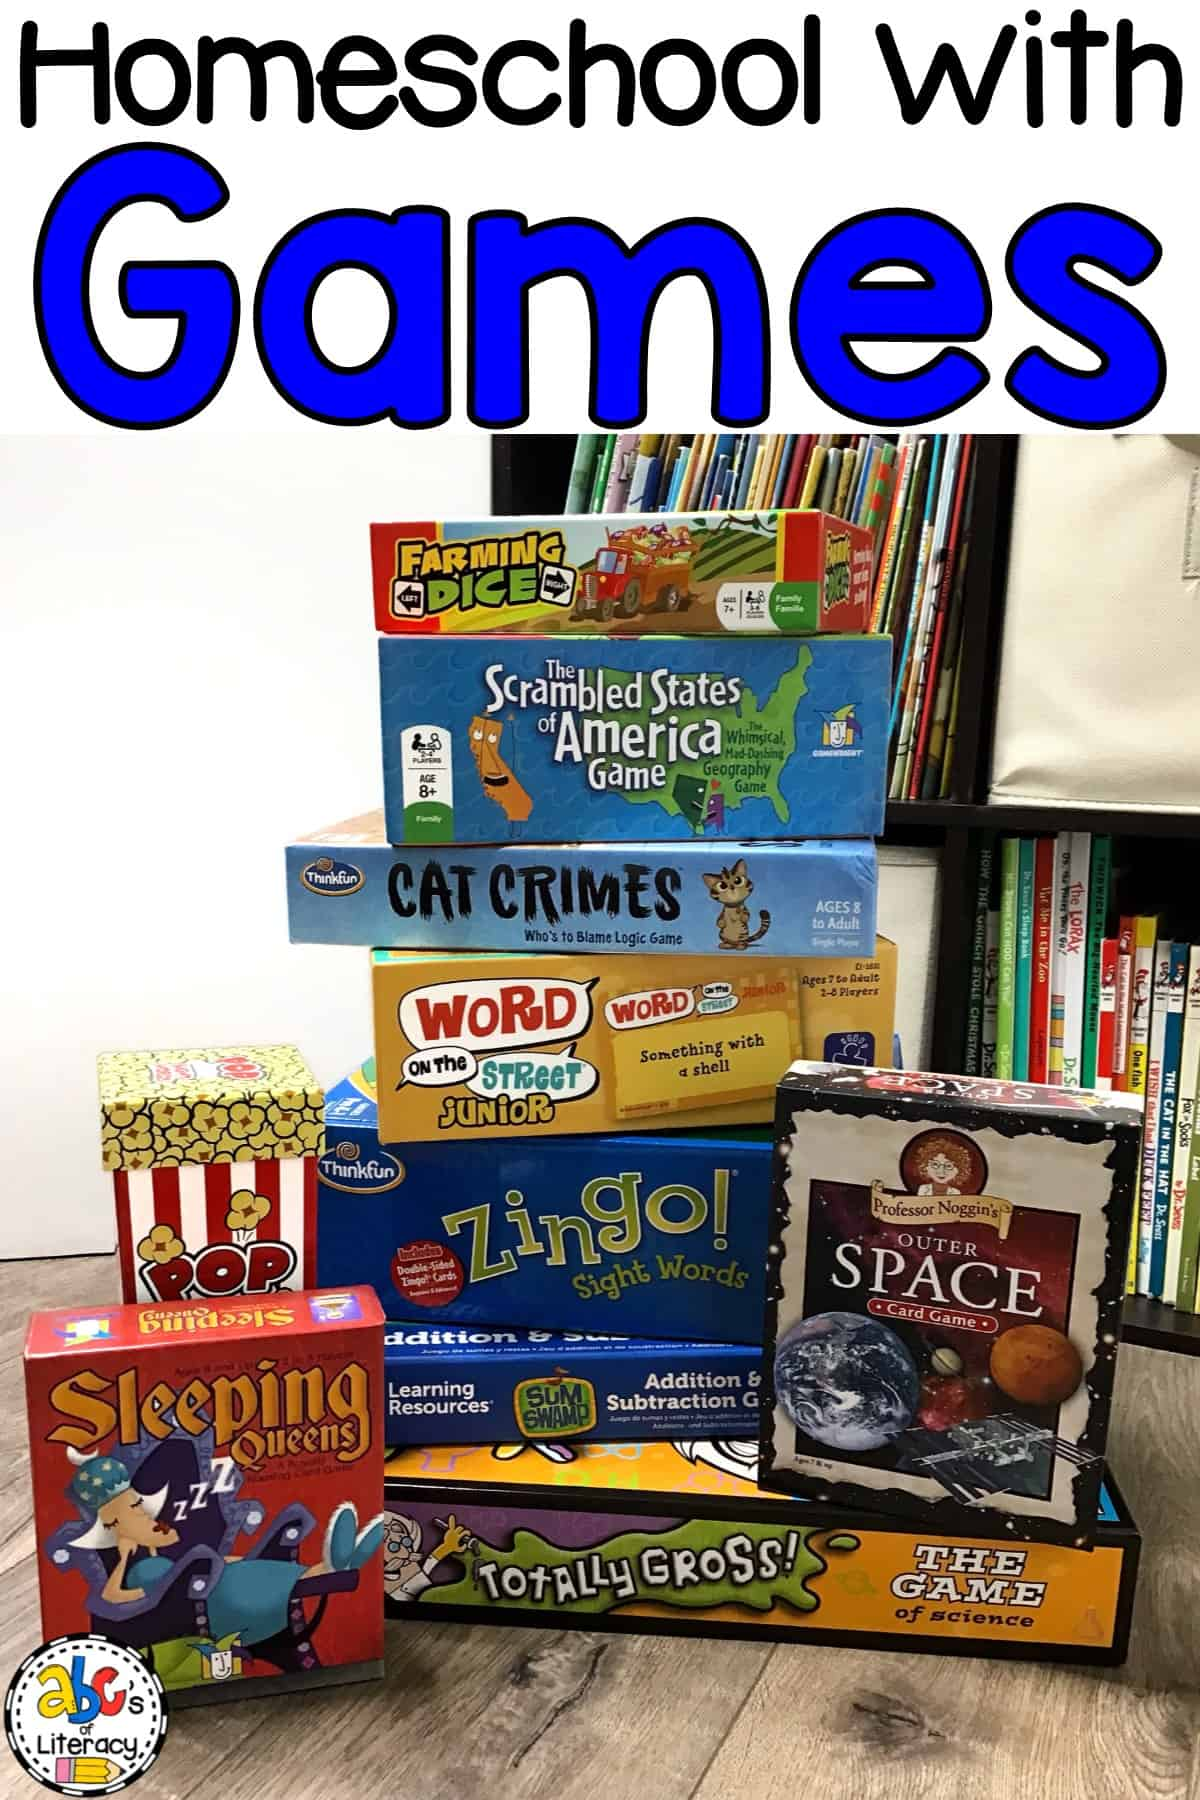 Do you want your homeschool day to be fun and games? Your kids can learn by playing games! Gameschooling is using games to teach your children.